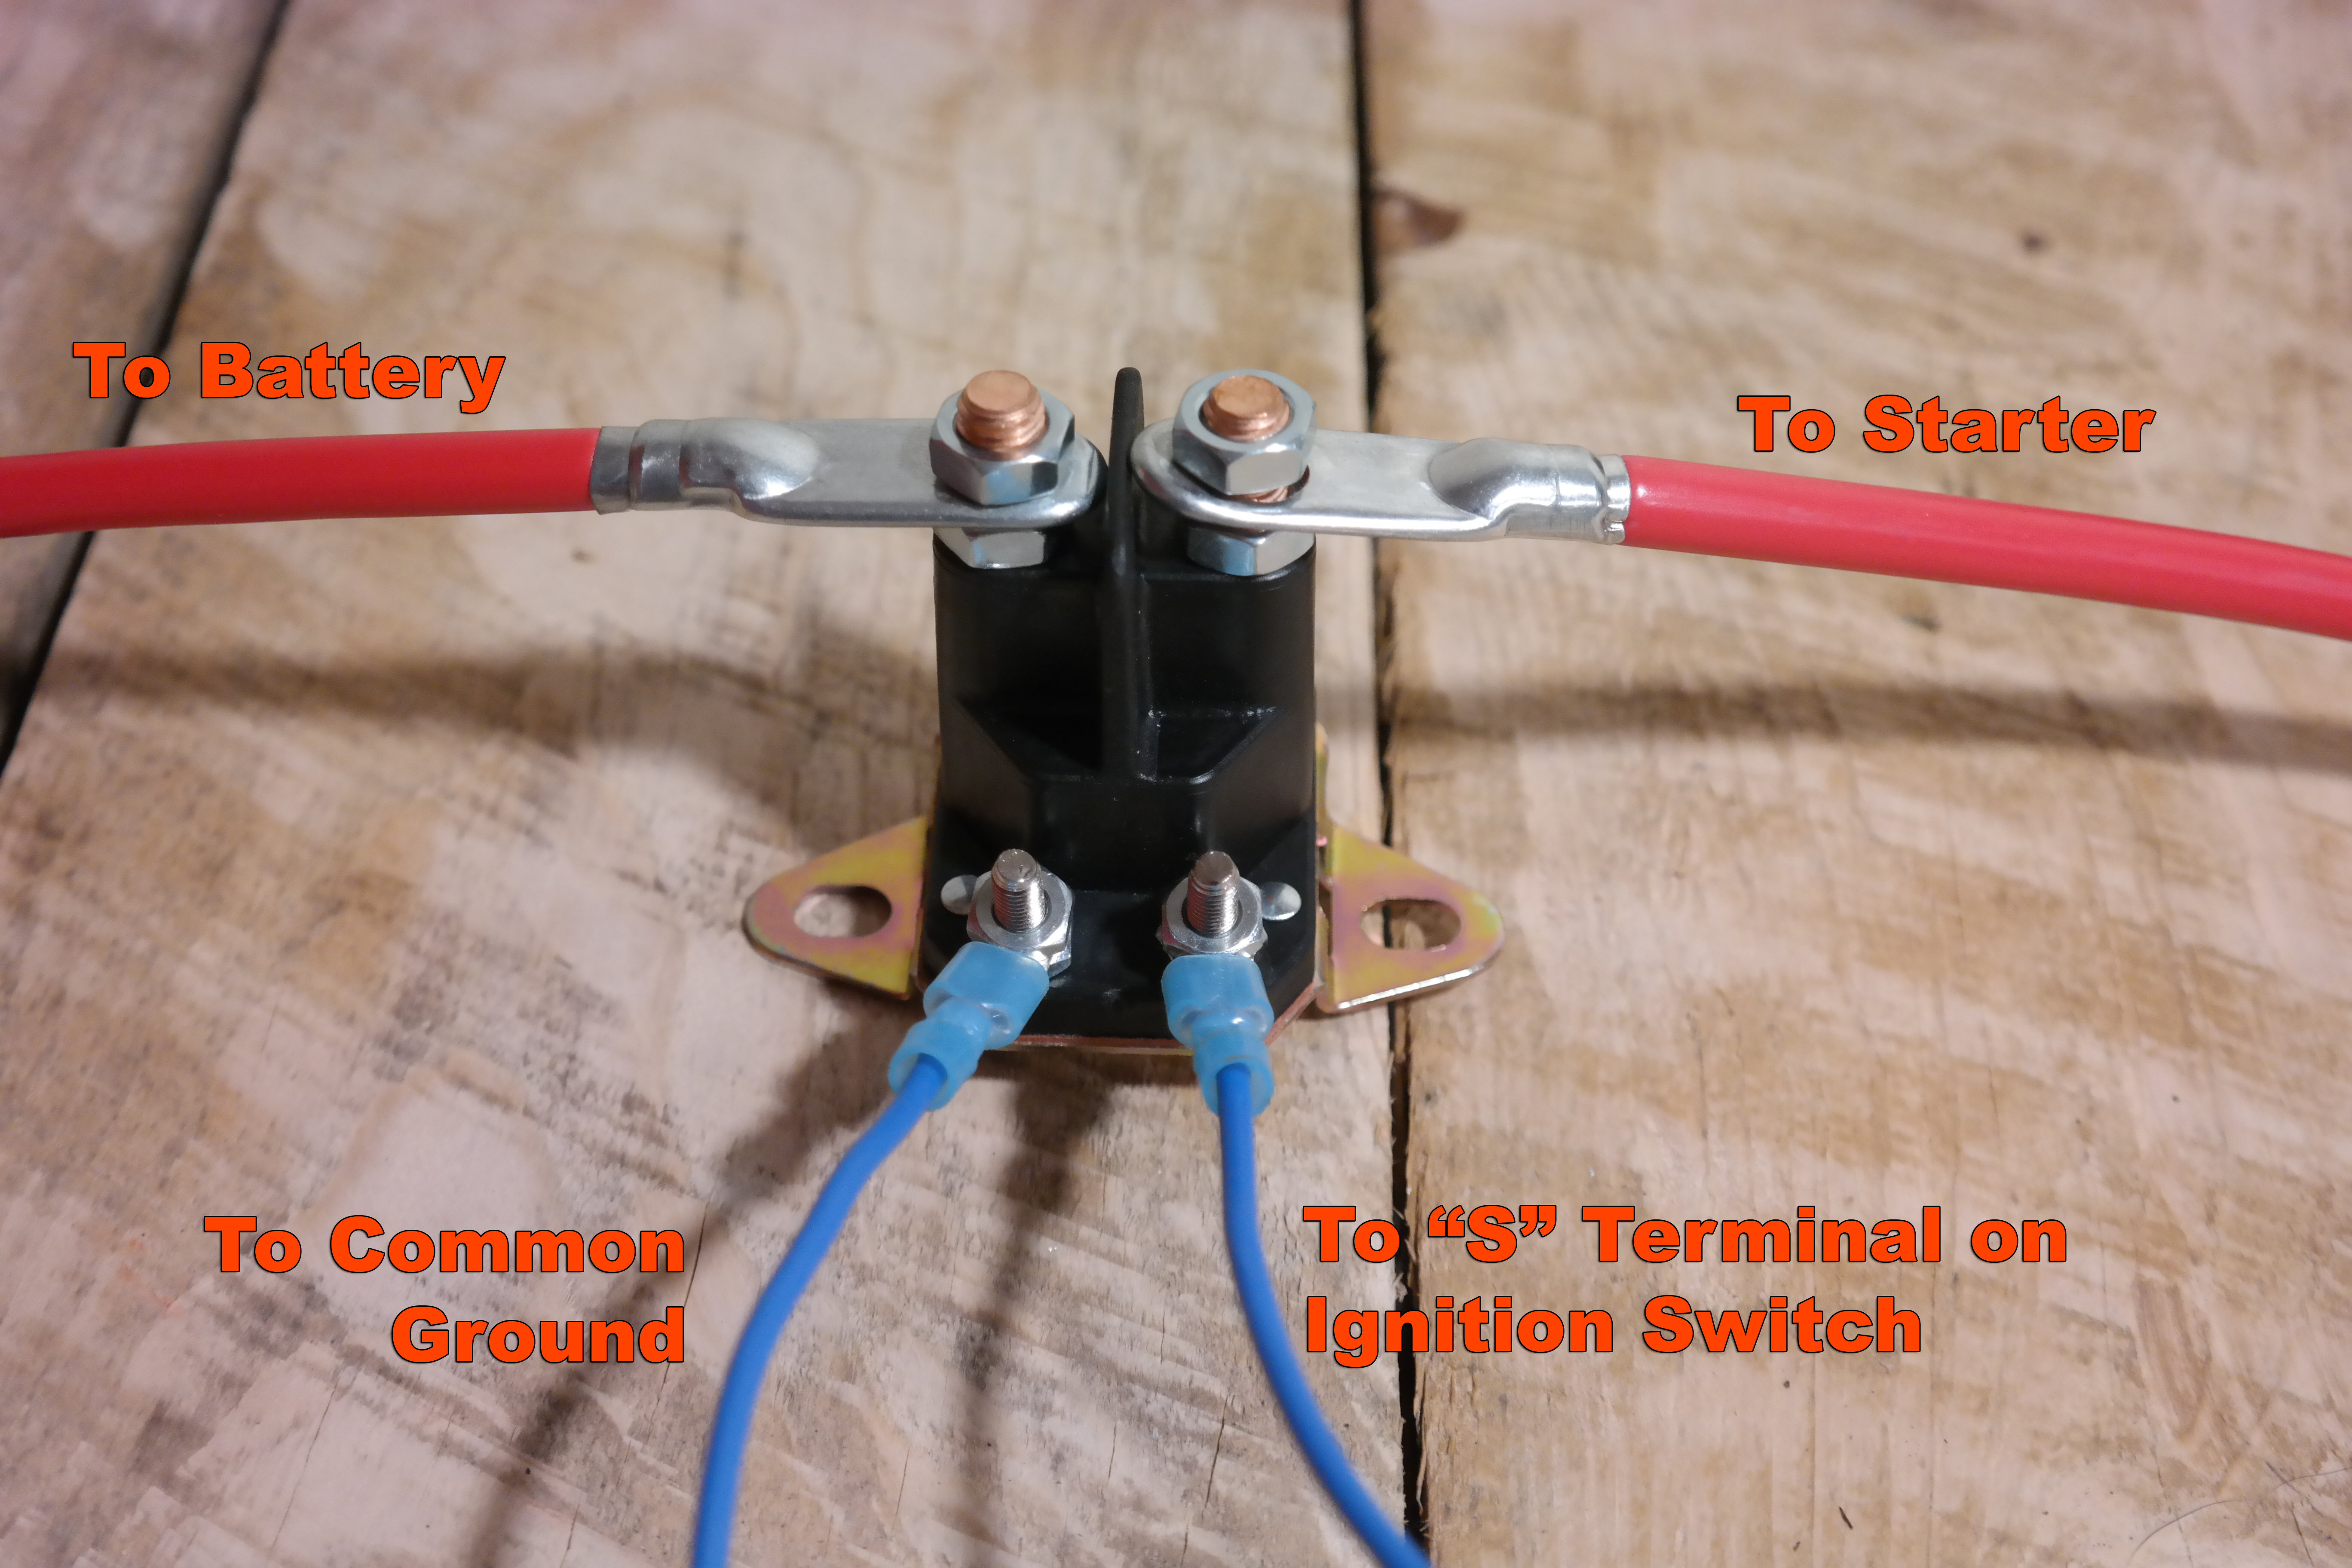 Kohler K321s Ignition Switch Wiring Diagram 43 Mower Also Engine Starter Solenoid Copyt1484665717 Copy T1484665717 Tractor Theory